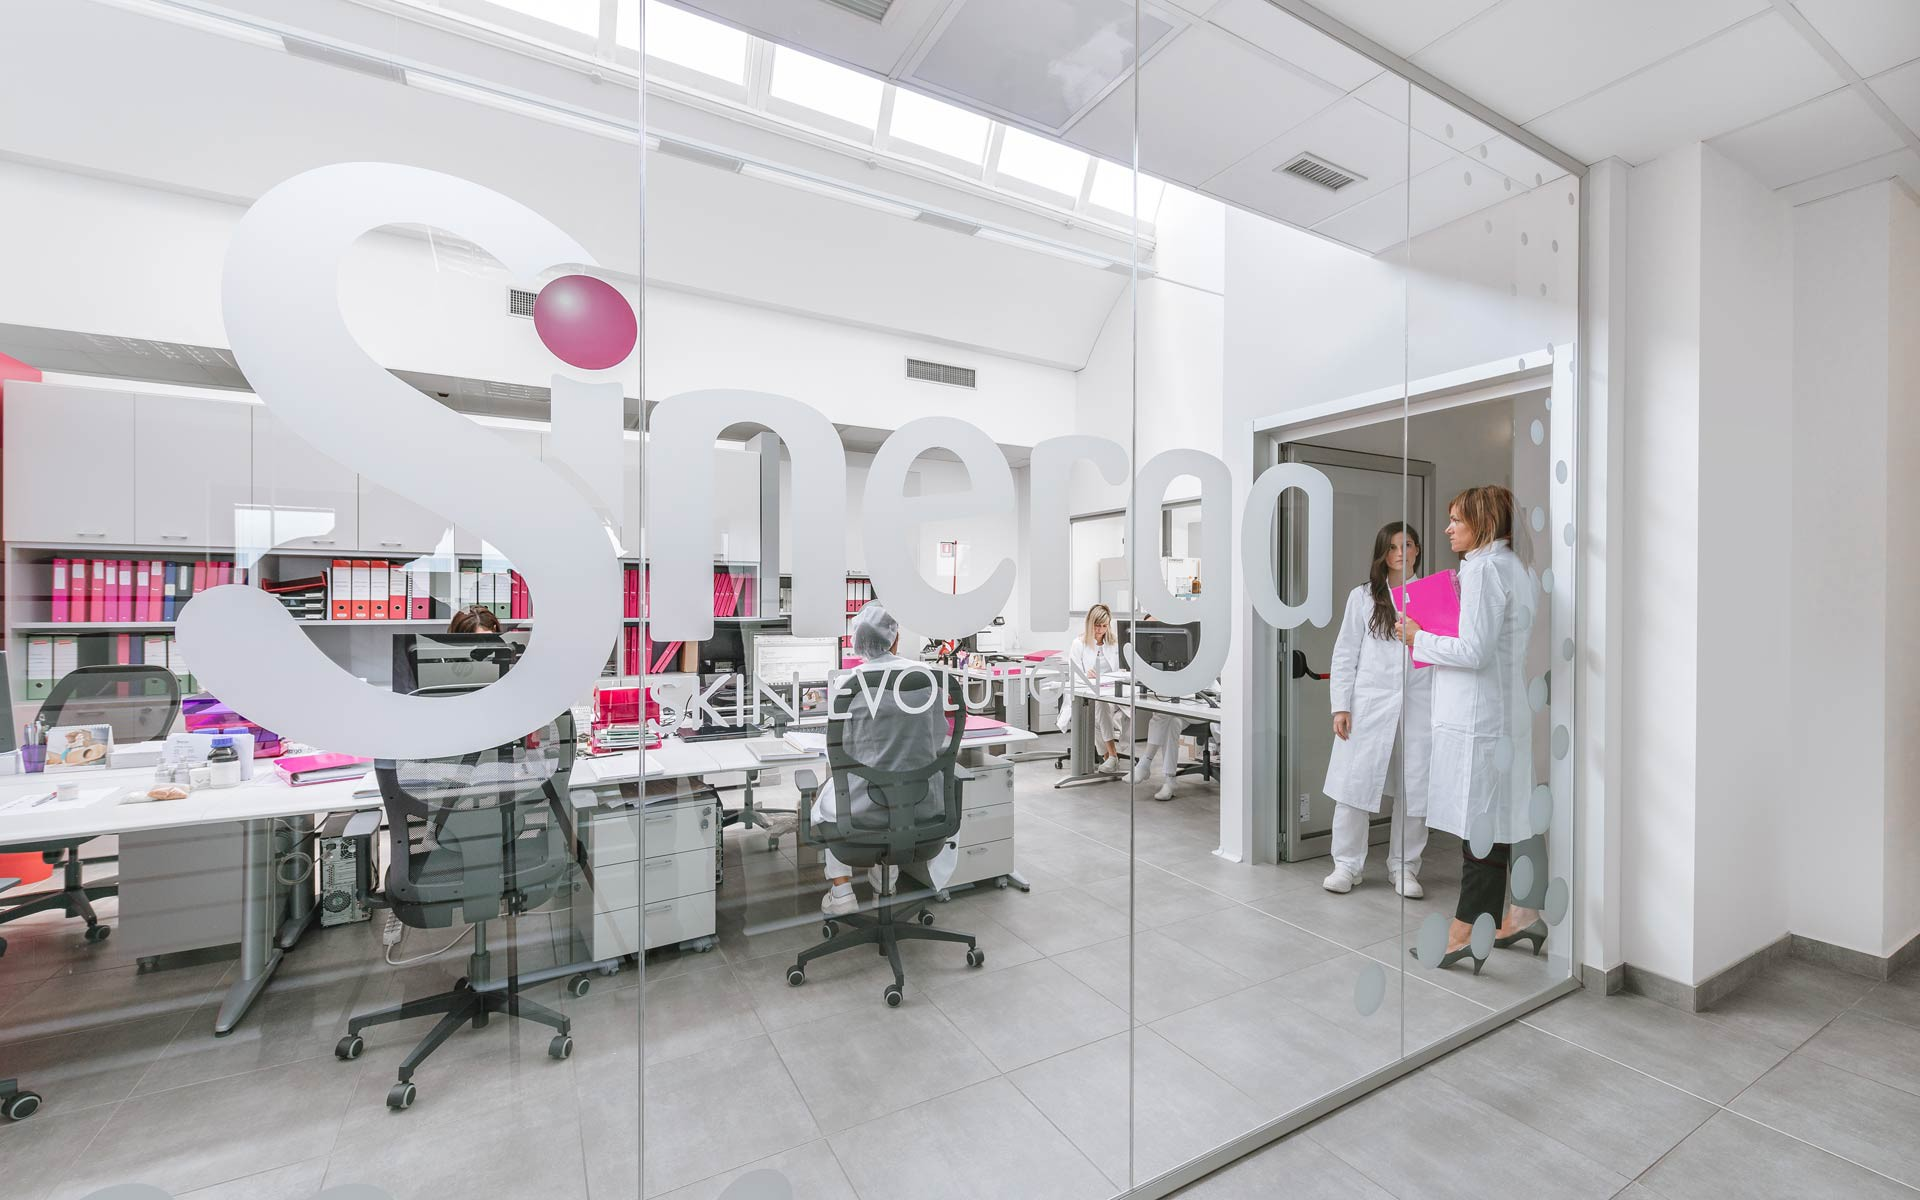 Sinerga, skin care manufacturer, strongly believes in the importance of recruiting the best specialists